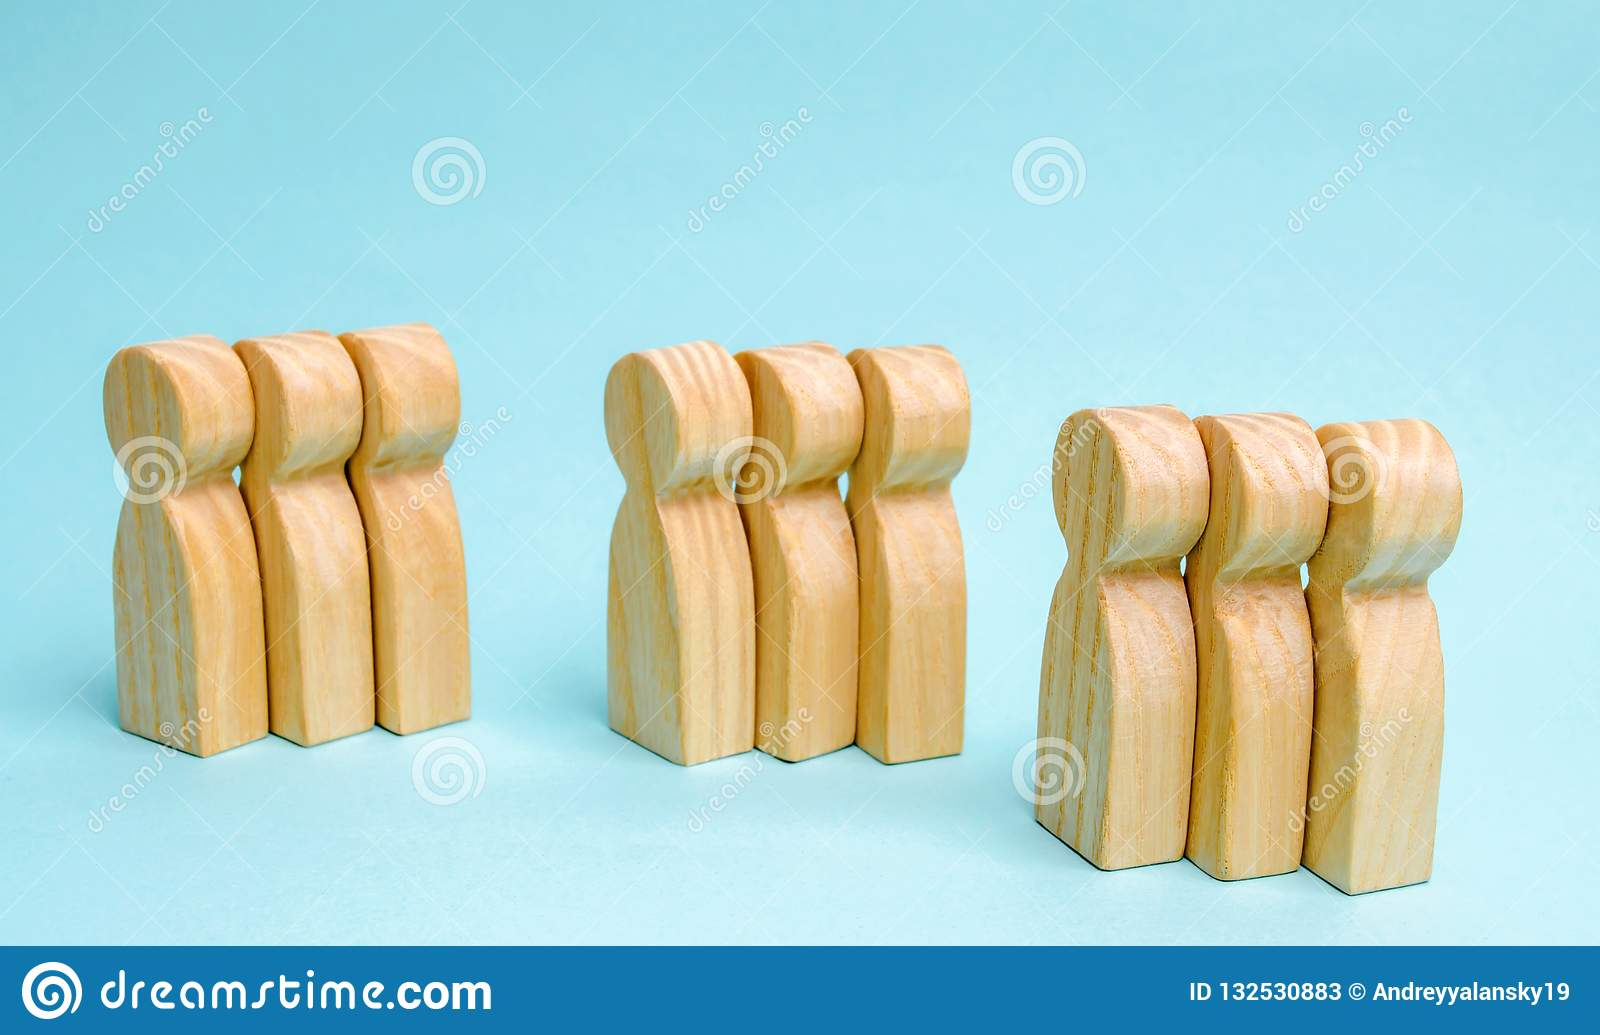 Groups of wooden people. The concept of market segmentation. Mar